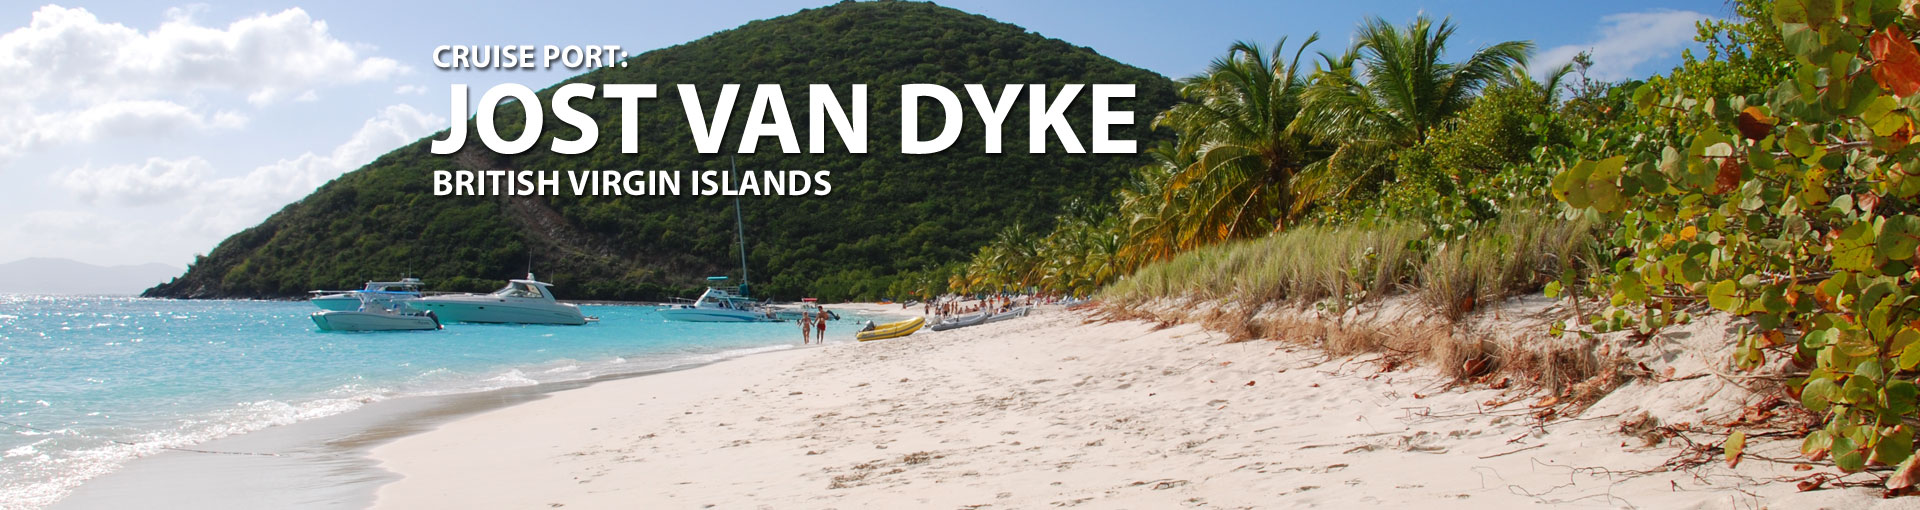 Cruises to Jost Van Dyke, British Virgin Islands